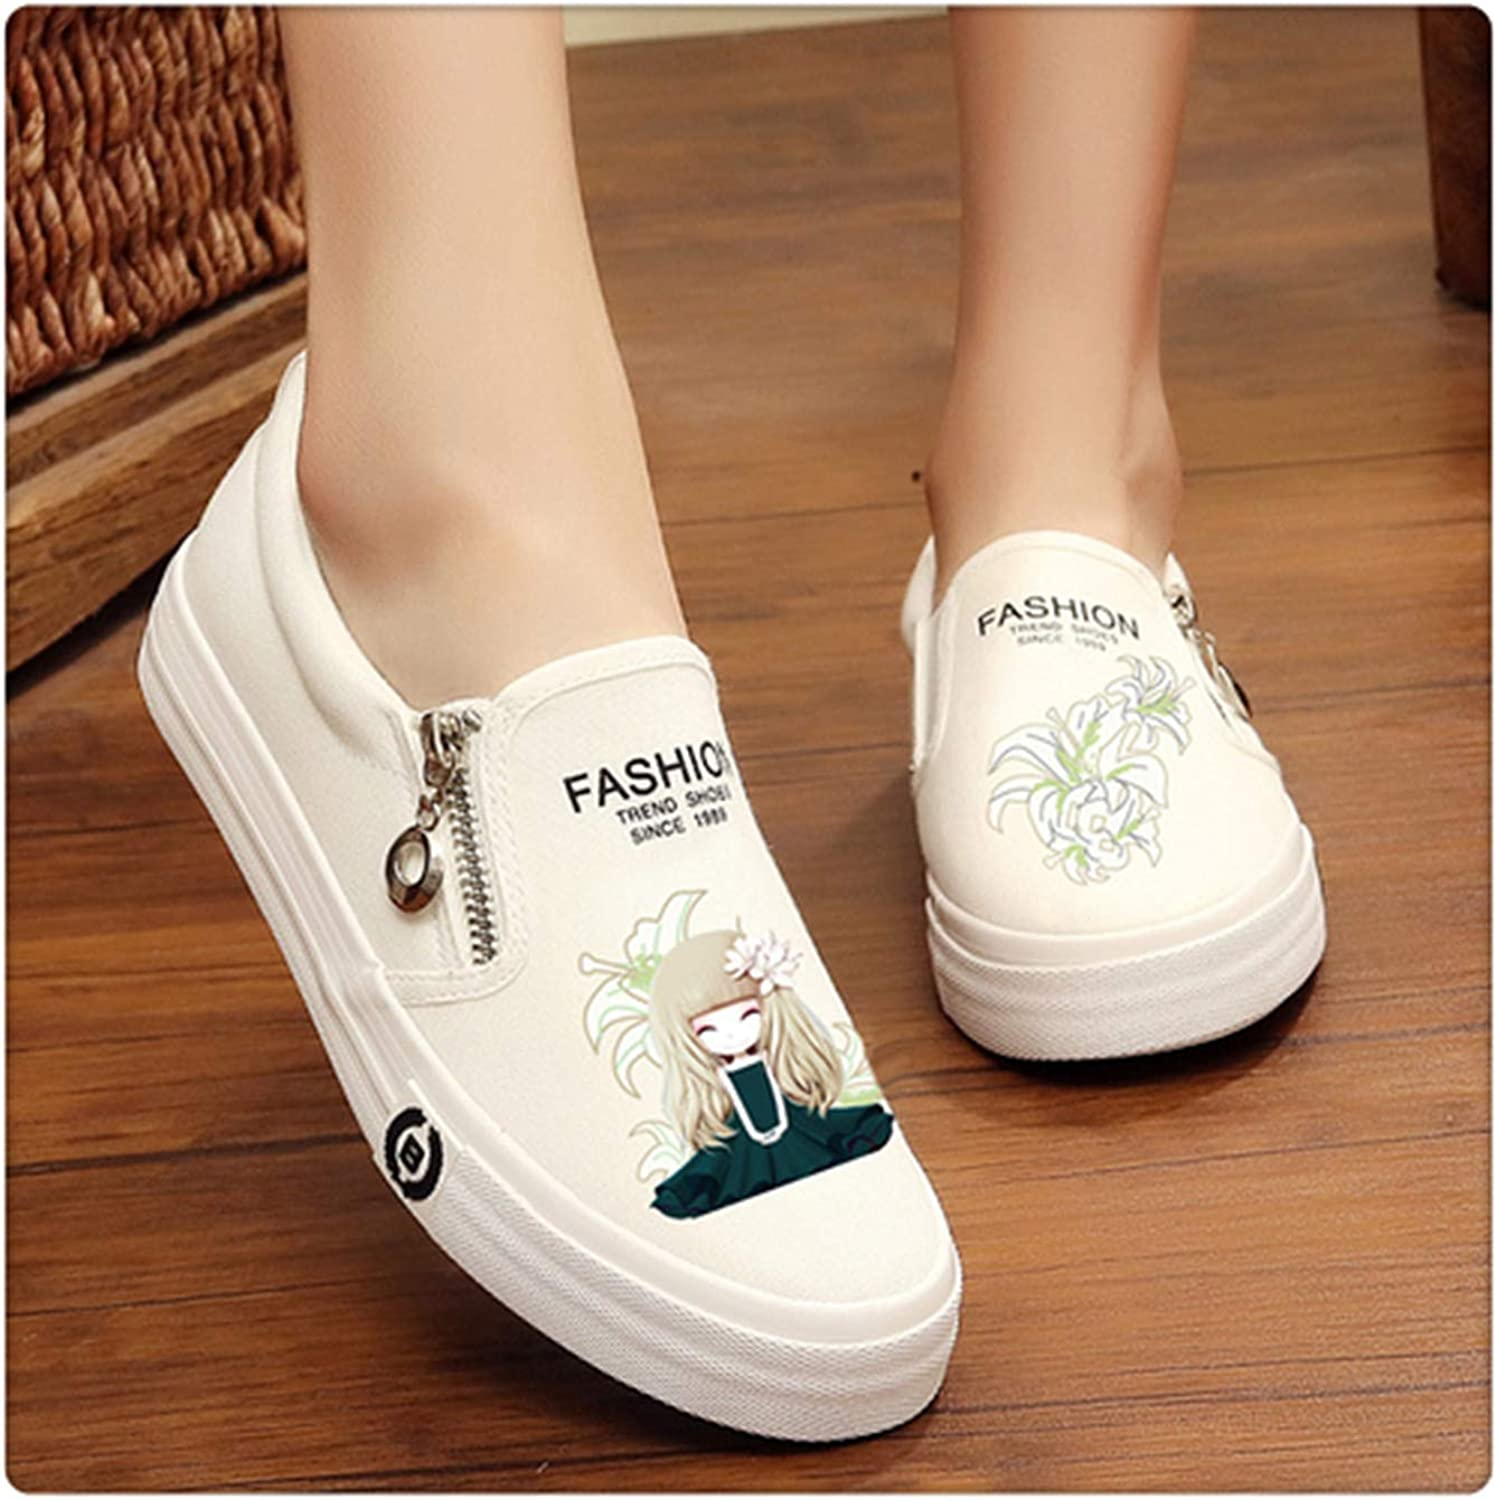 HAHUTG& Slip on Women's Platform shoes Summer 2019 Thick Heel Loafers Floral Canvas shoes Women Espadrilles White Black bai baihe meinv 4.5